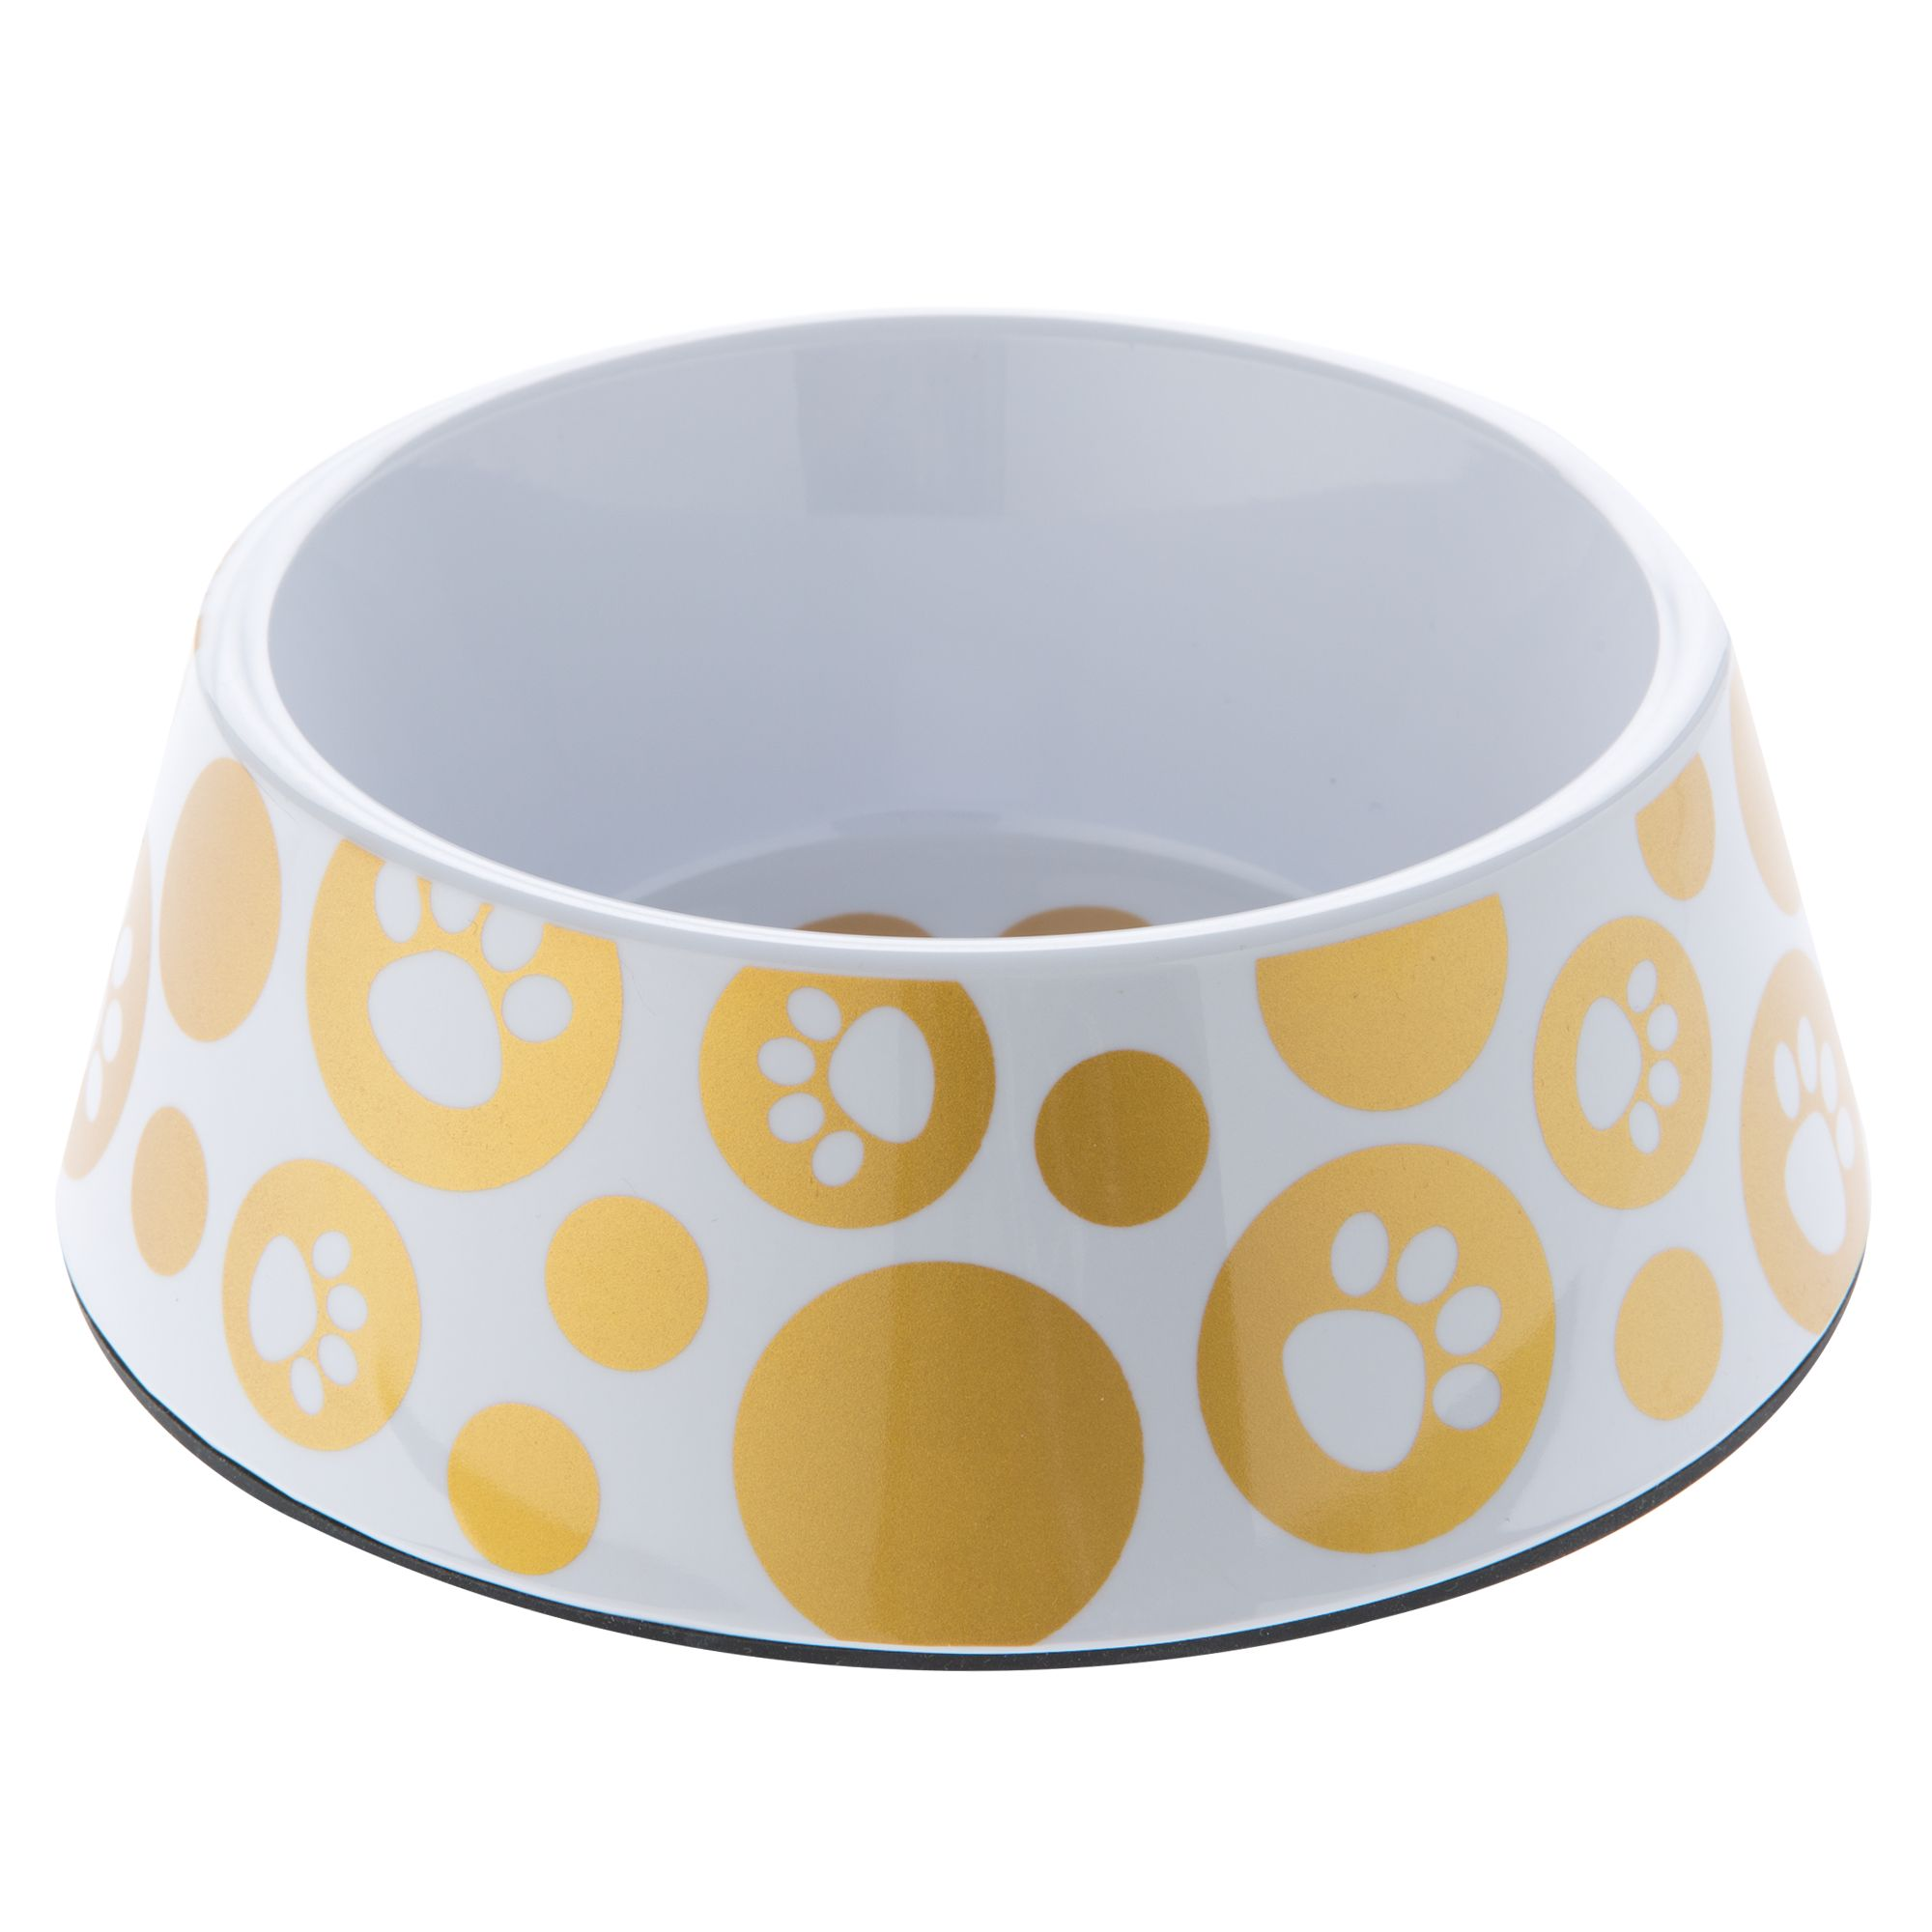 Top Paw® Glitz Paws Dog Bowl size: 4 Oz, White 5250606